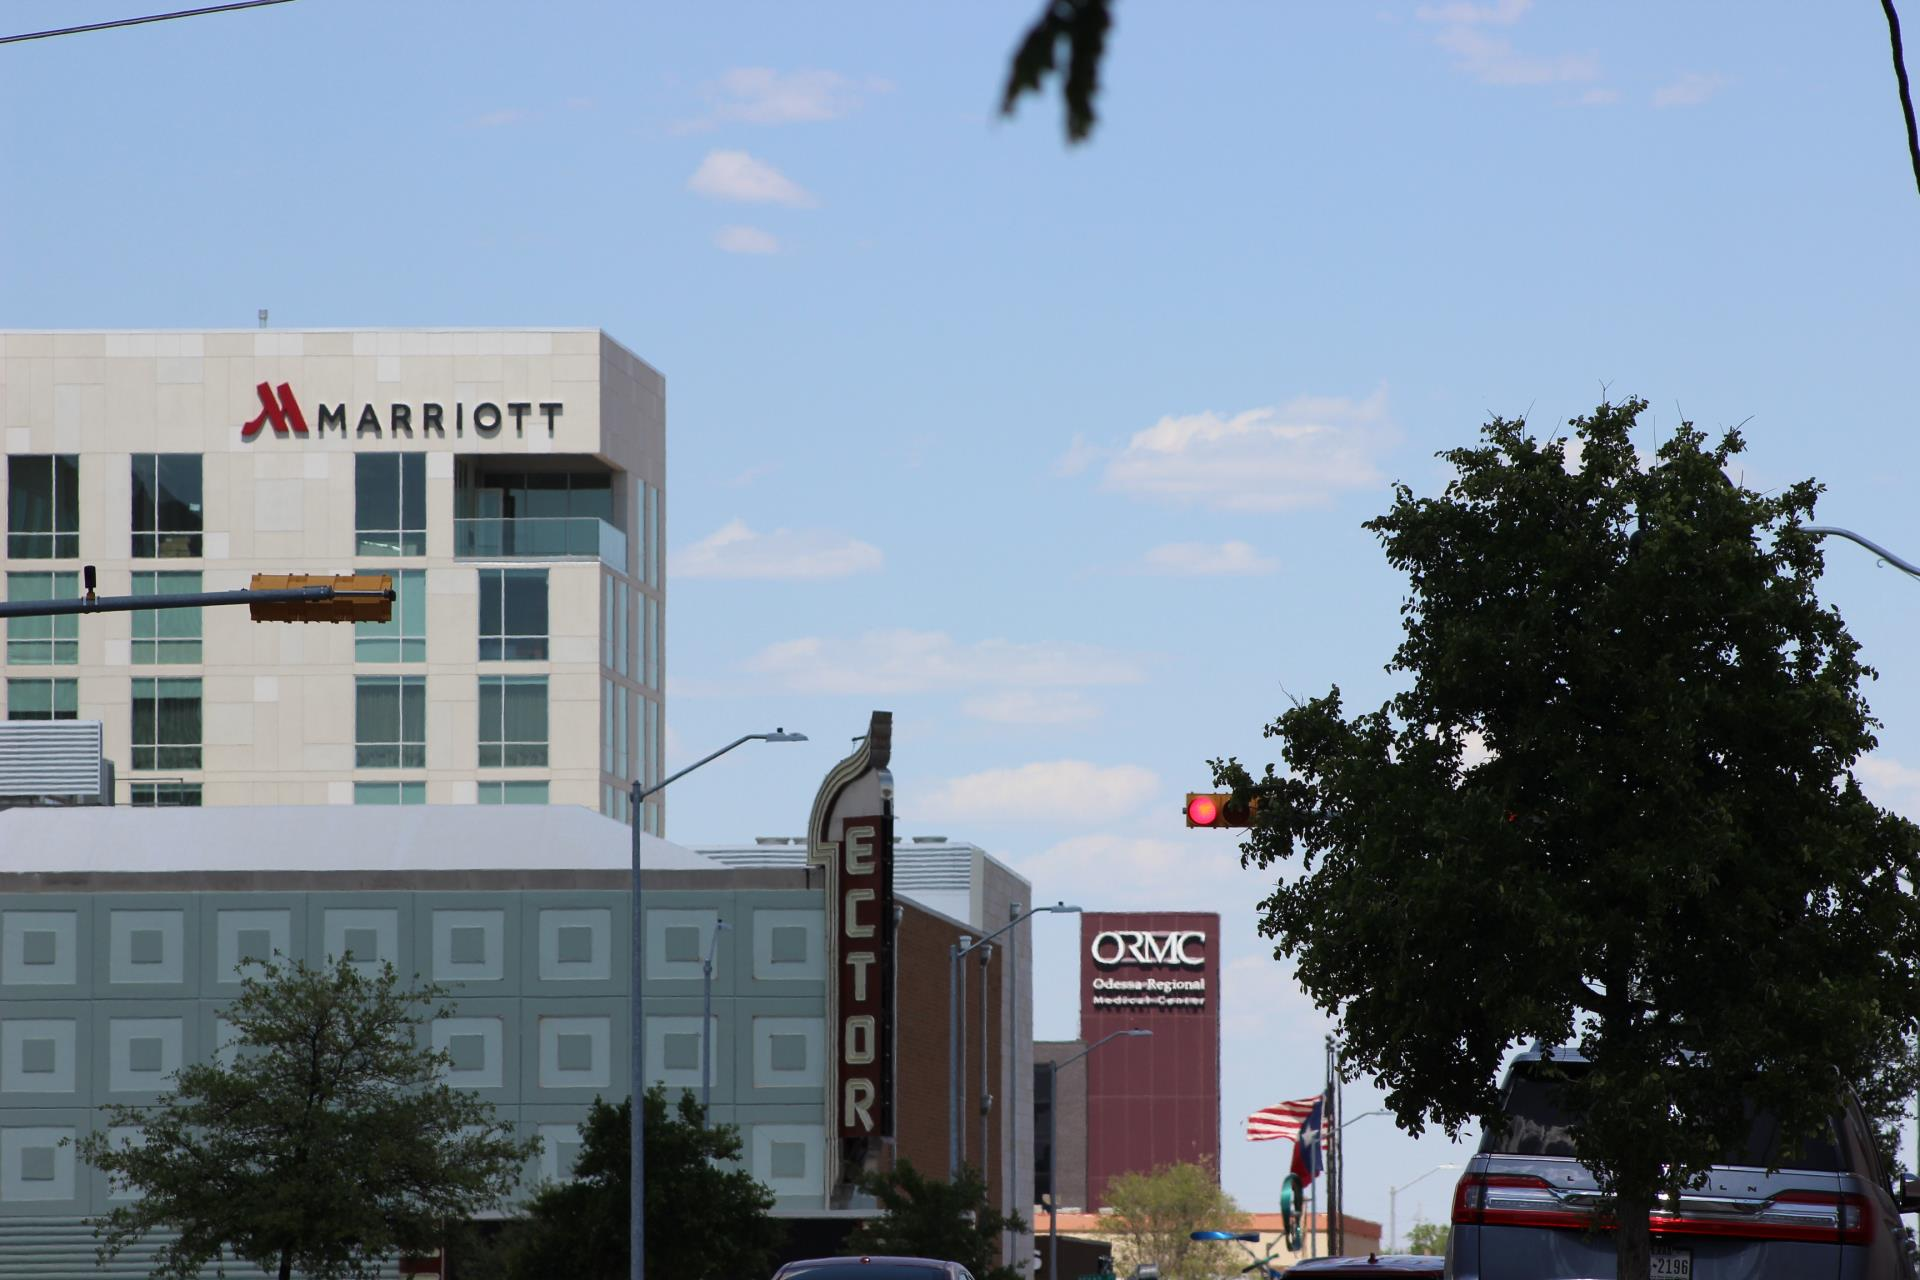 Ector Theatre, Odessa Regional Medical Center, and Odessa Marriott Hotel and Conference Center